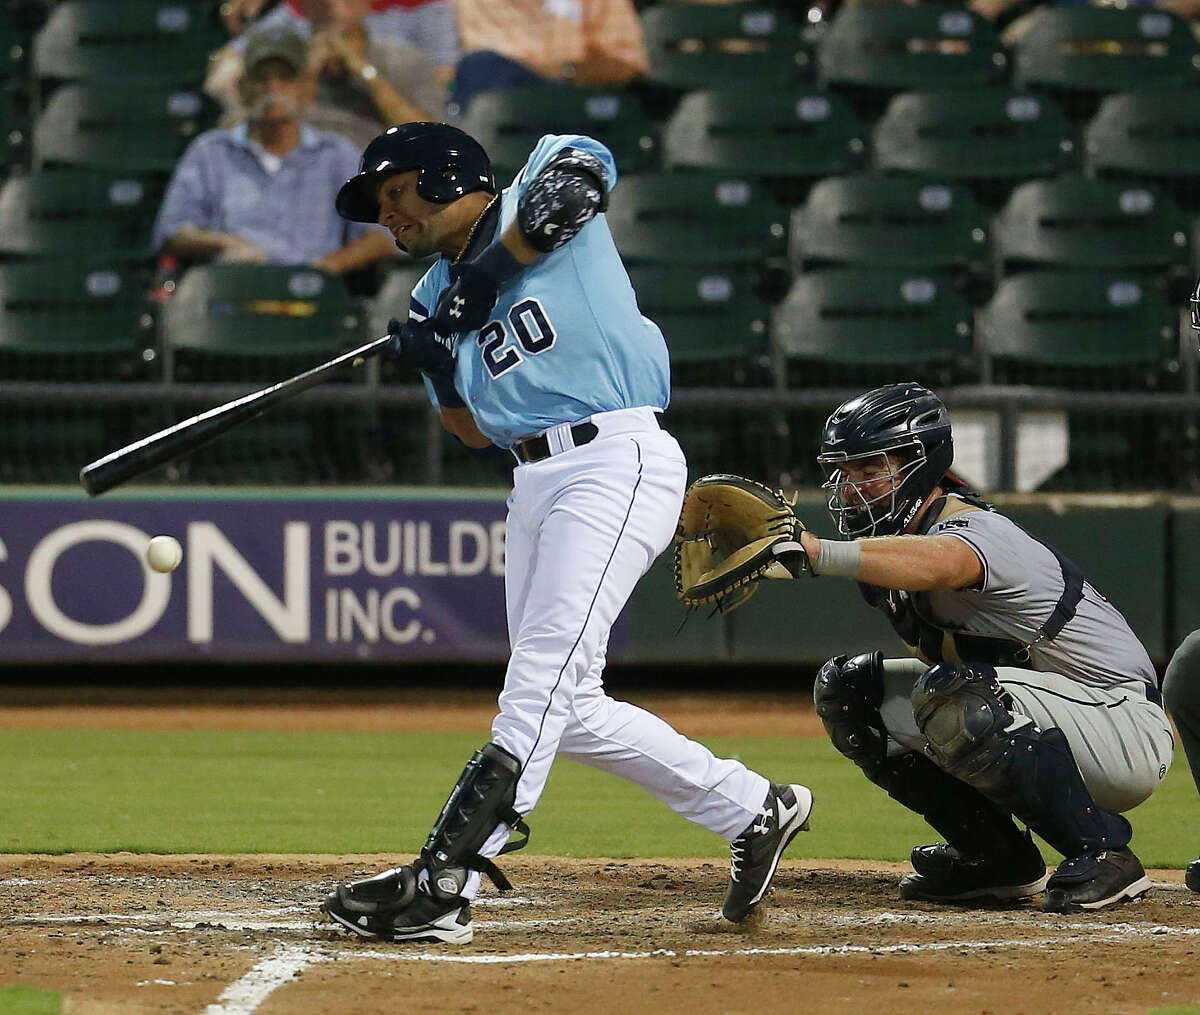 Astros prospect Yulieski Gurriel, the recently signed Cuban infielder, at bat in the sixth inning at Whataburger Field home of the AA Corpus Christi Hooks, Tuesday, Aug. 9, 2016, in Corpus Christi ( Karen Warren / Houston Chronicle )